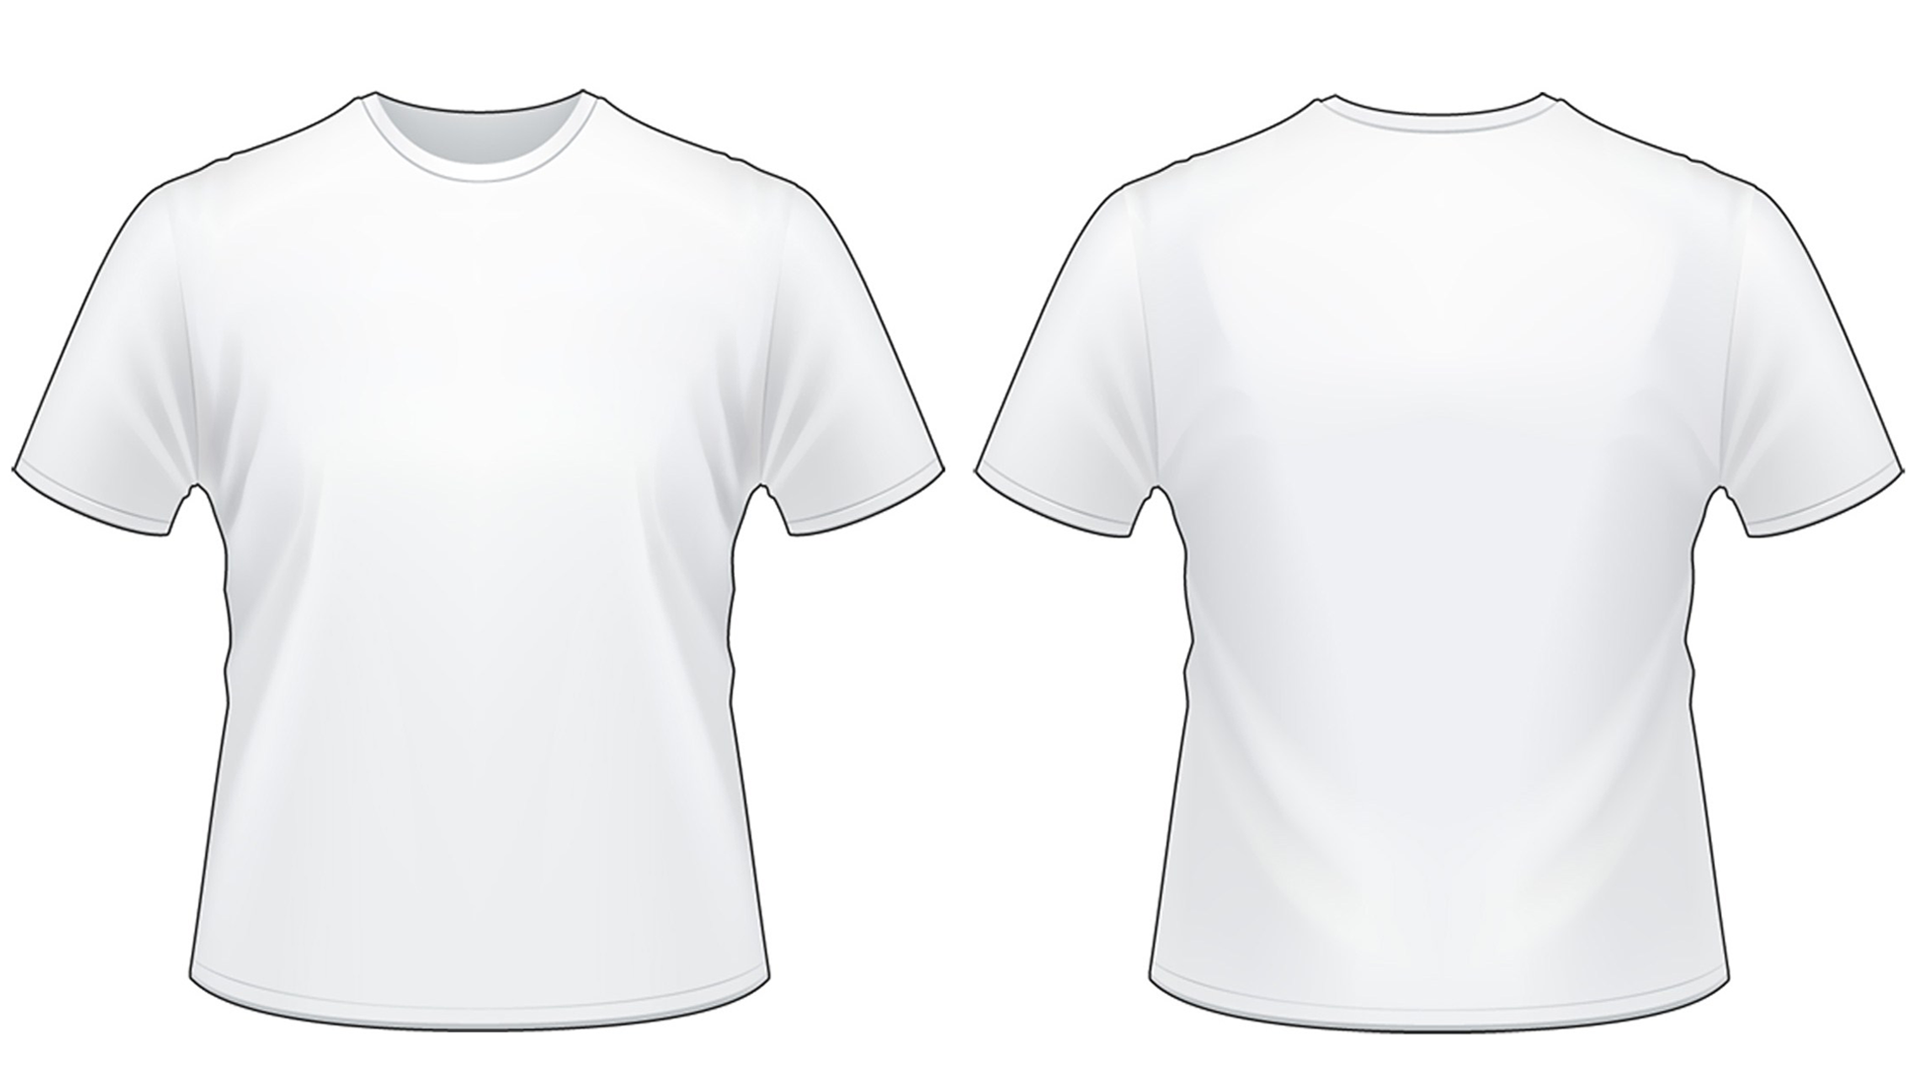 Blank Tshirt Template Worksheet In Png Hd Wallpapers Wallpapers Download High Resolution Wallpapers Shirt Template Blank T Shirts Tshirt Template